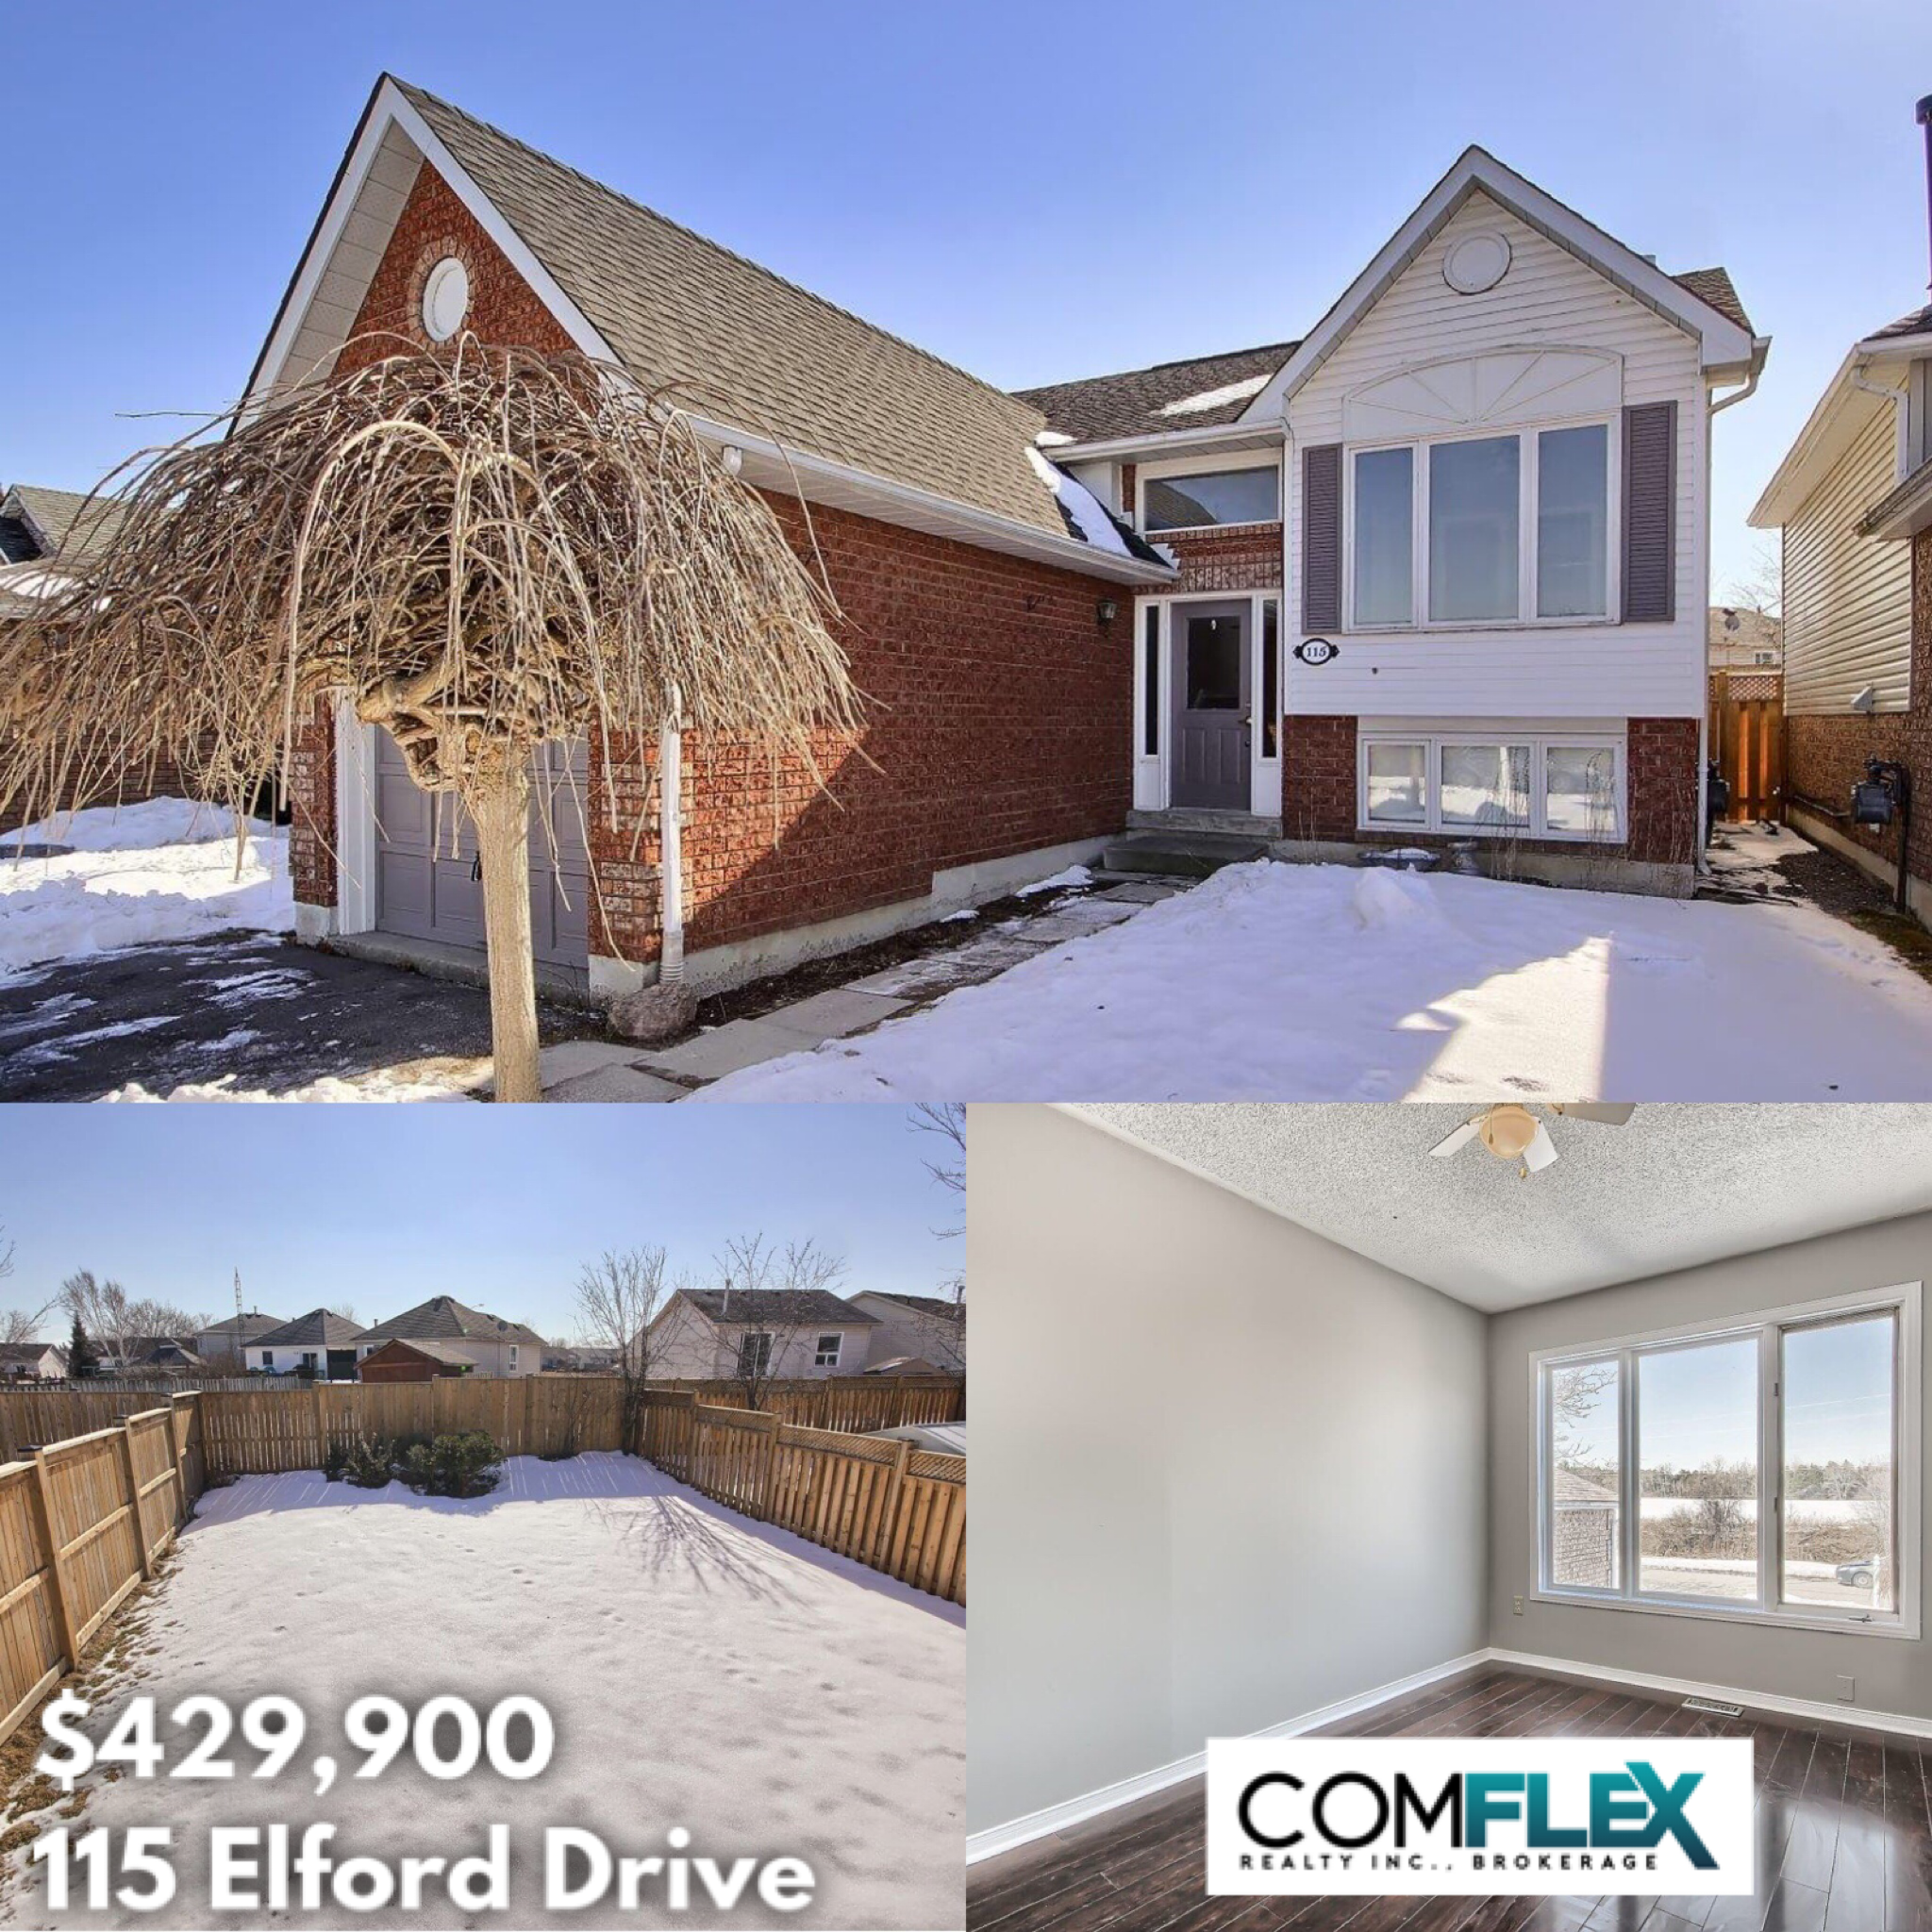 JUST LISTED! 115 ELFORD DRIVE, $429900